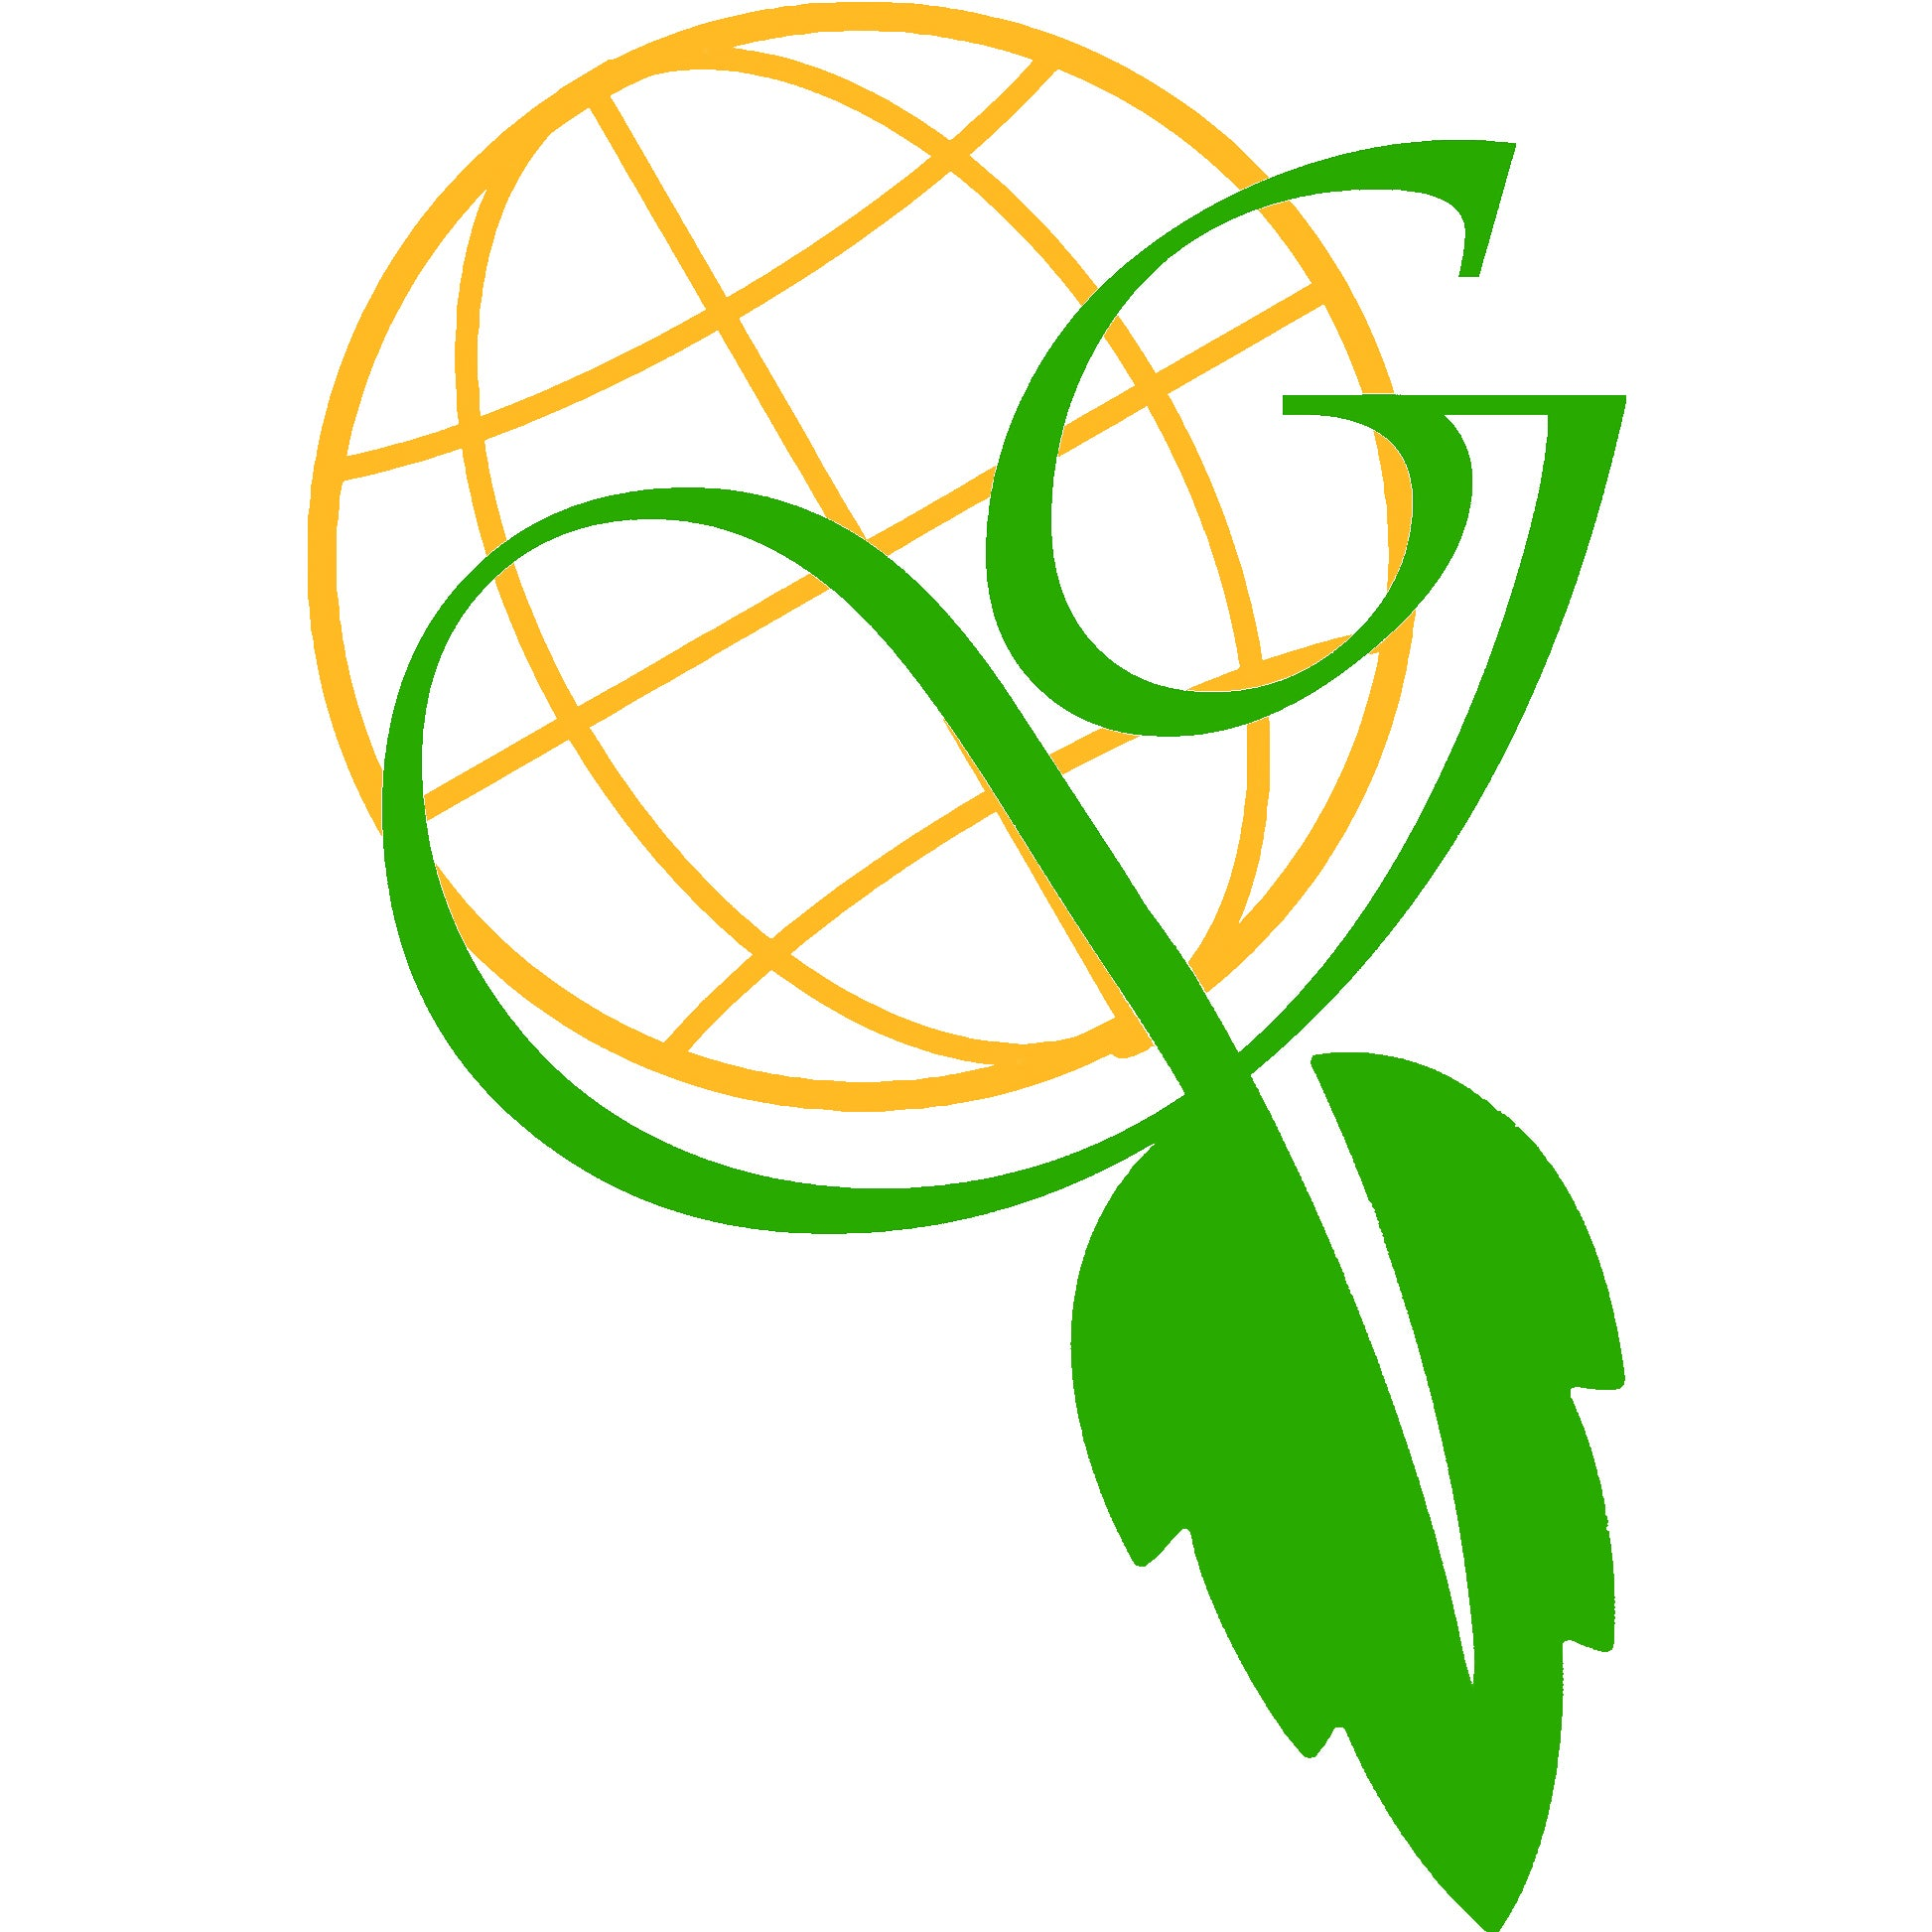 Greeniverse LLC